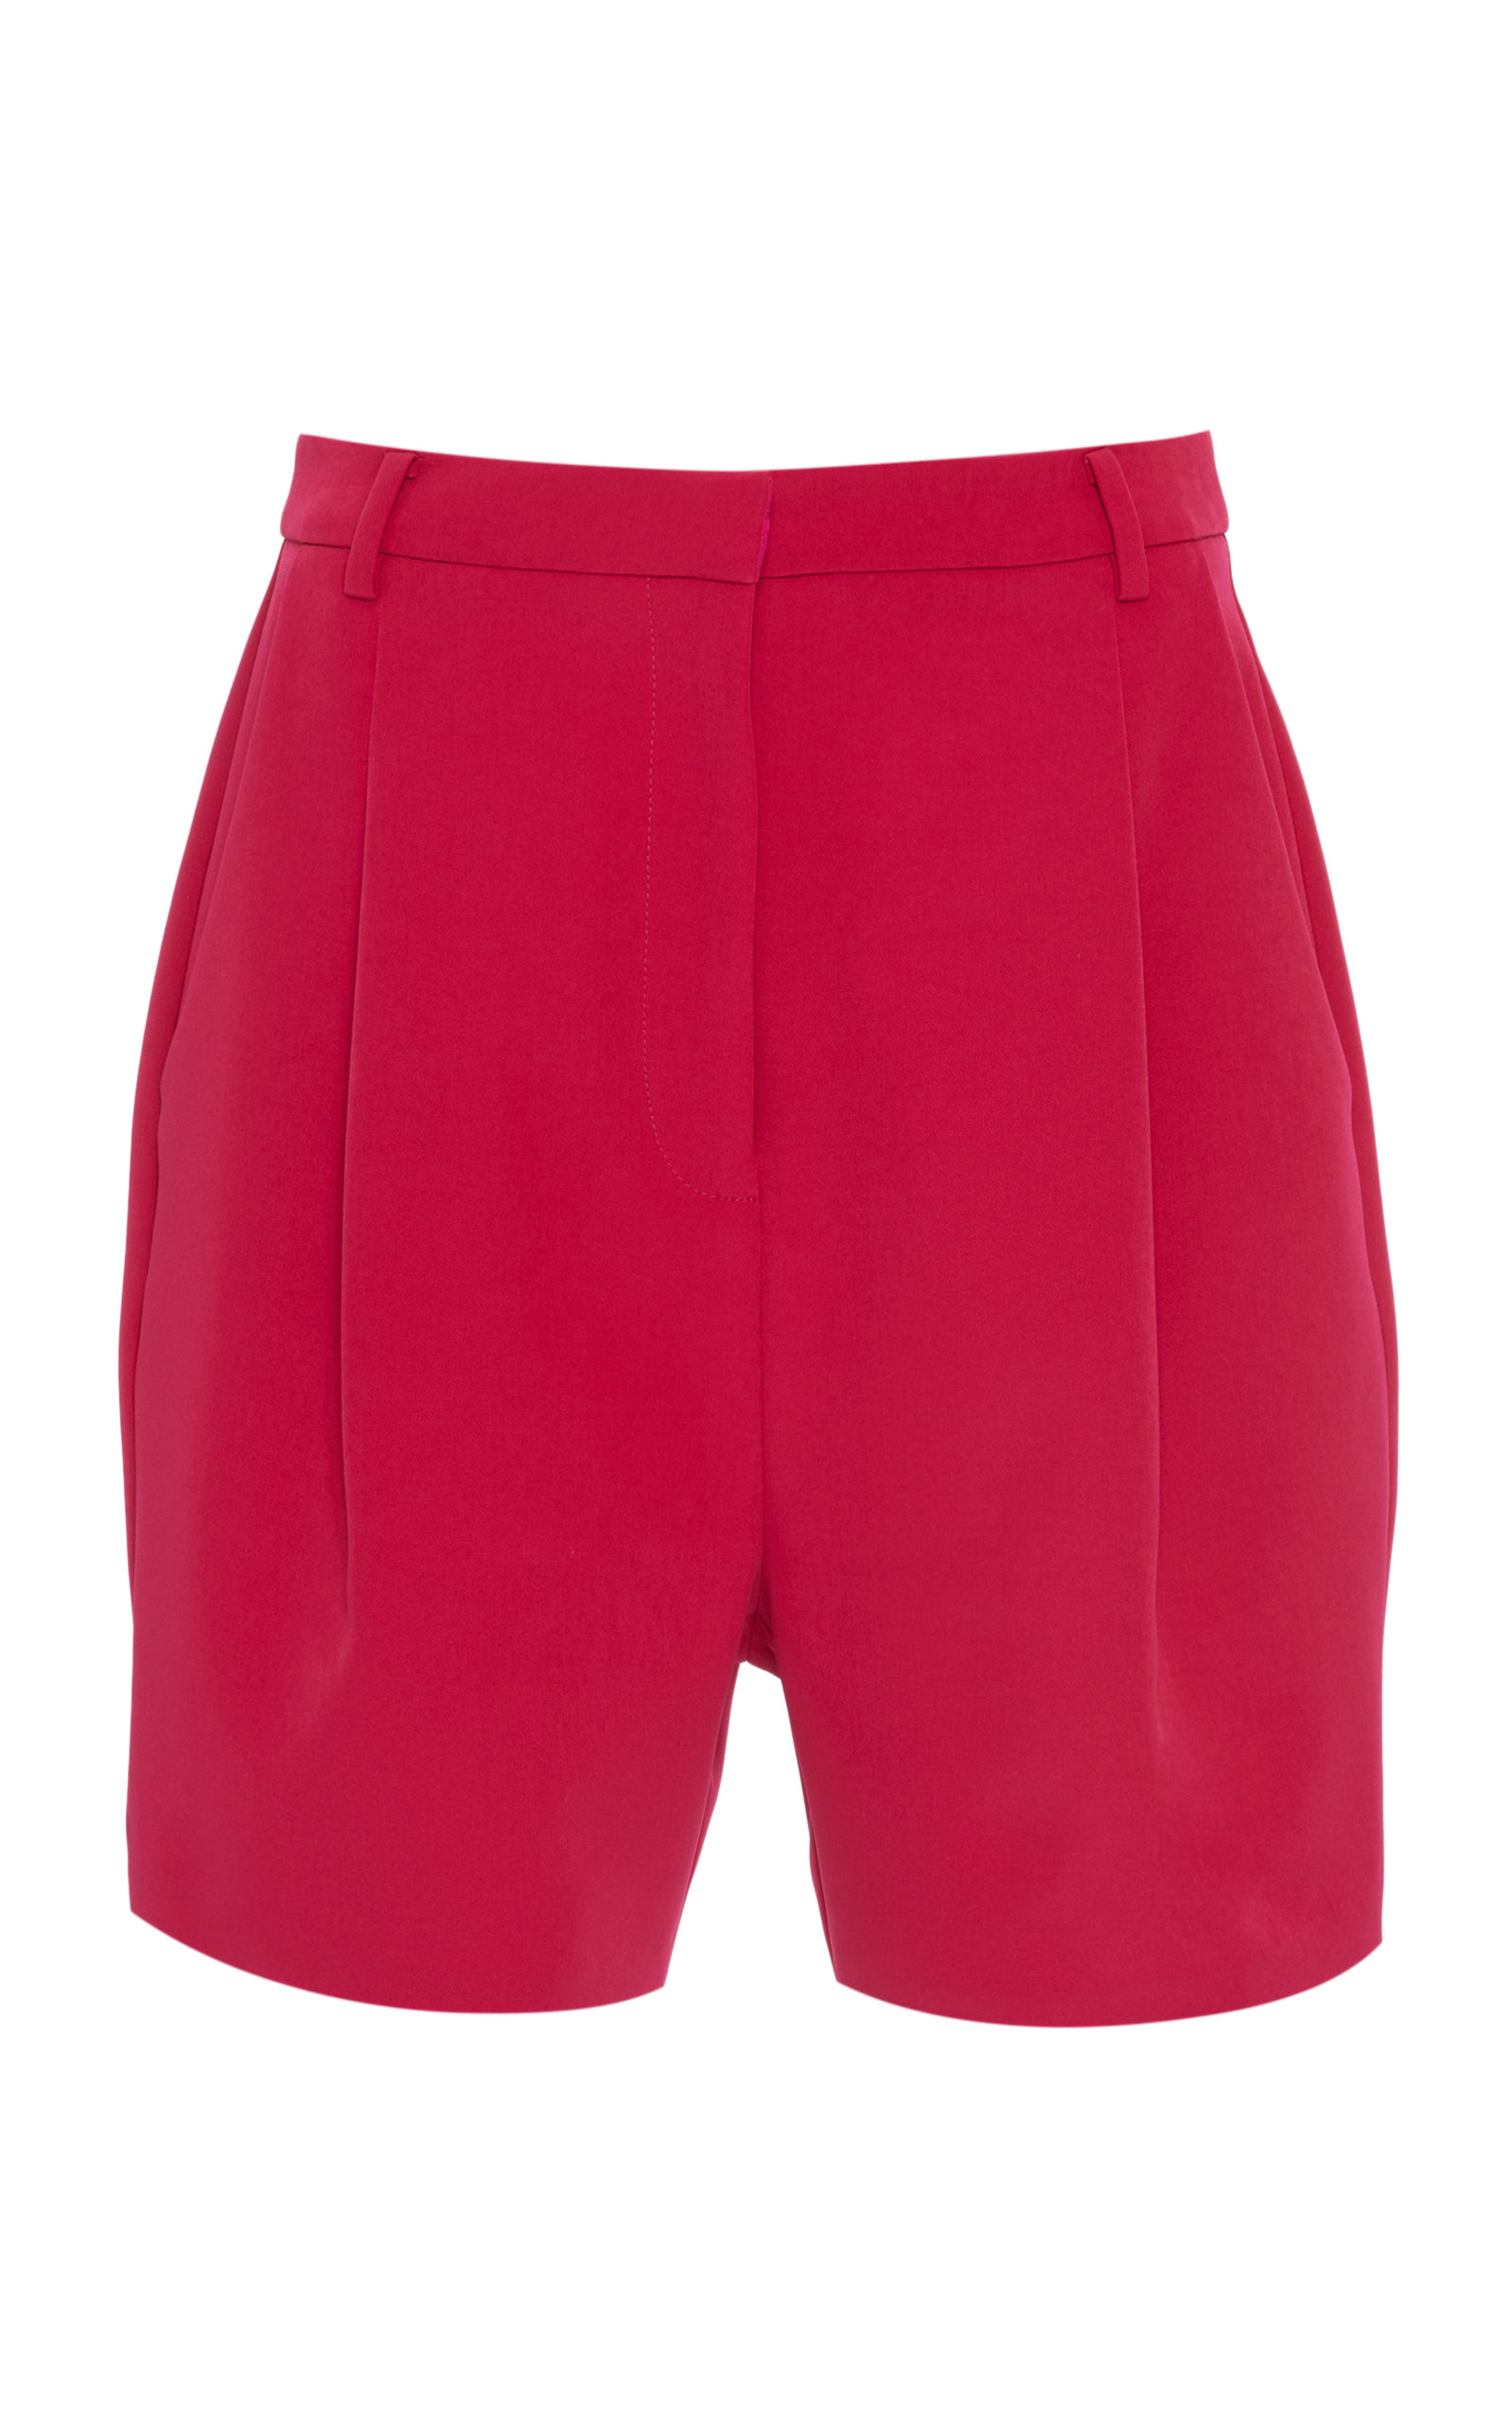 SALLY LAPOINTE | Sally LaPointe Pleated Stretch-Crepe Shorts | Goxip